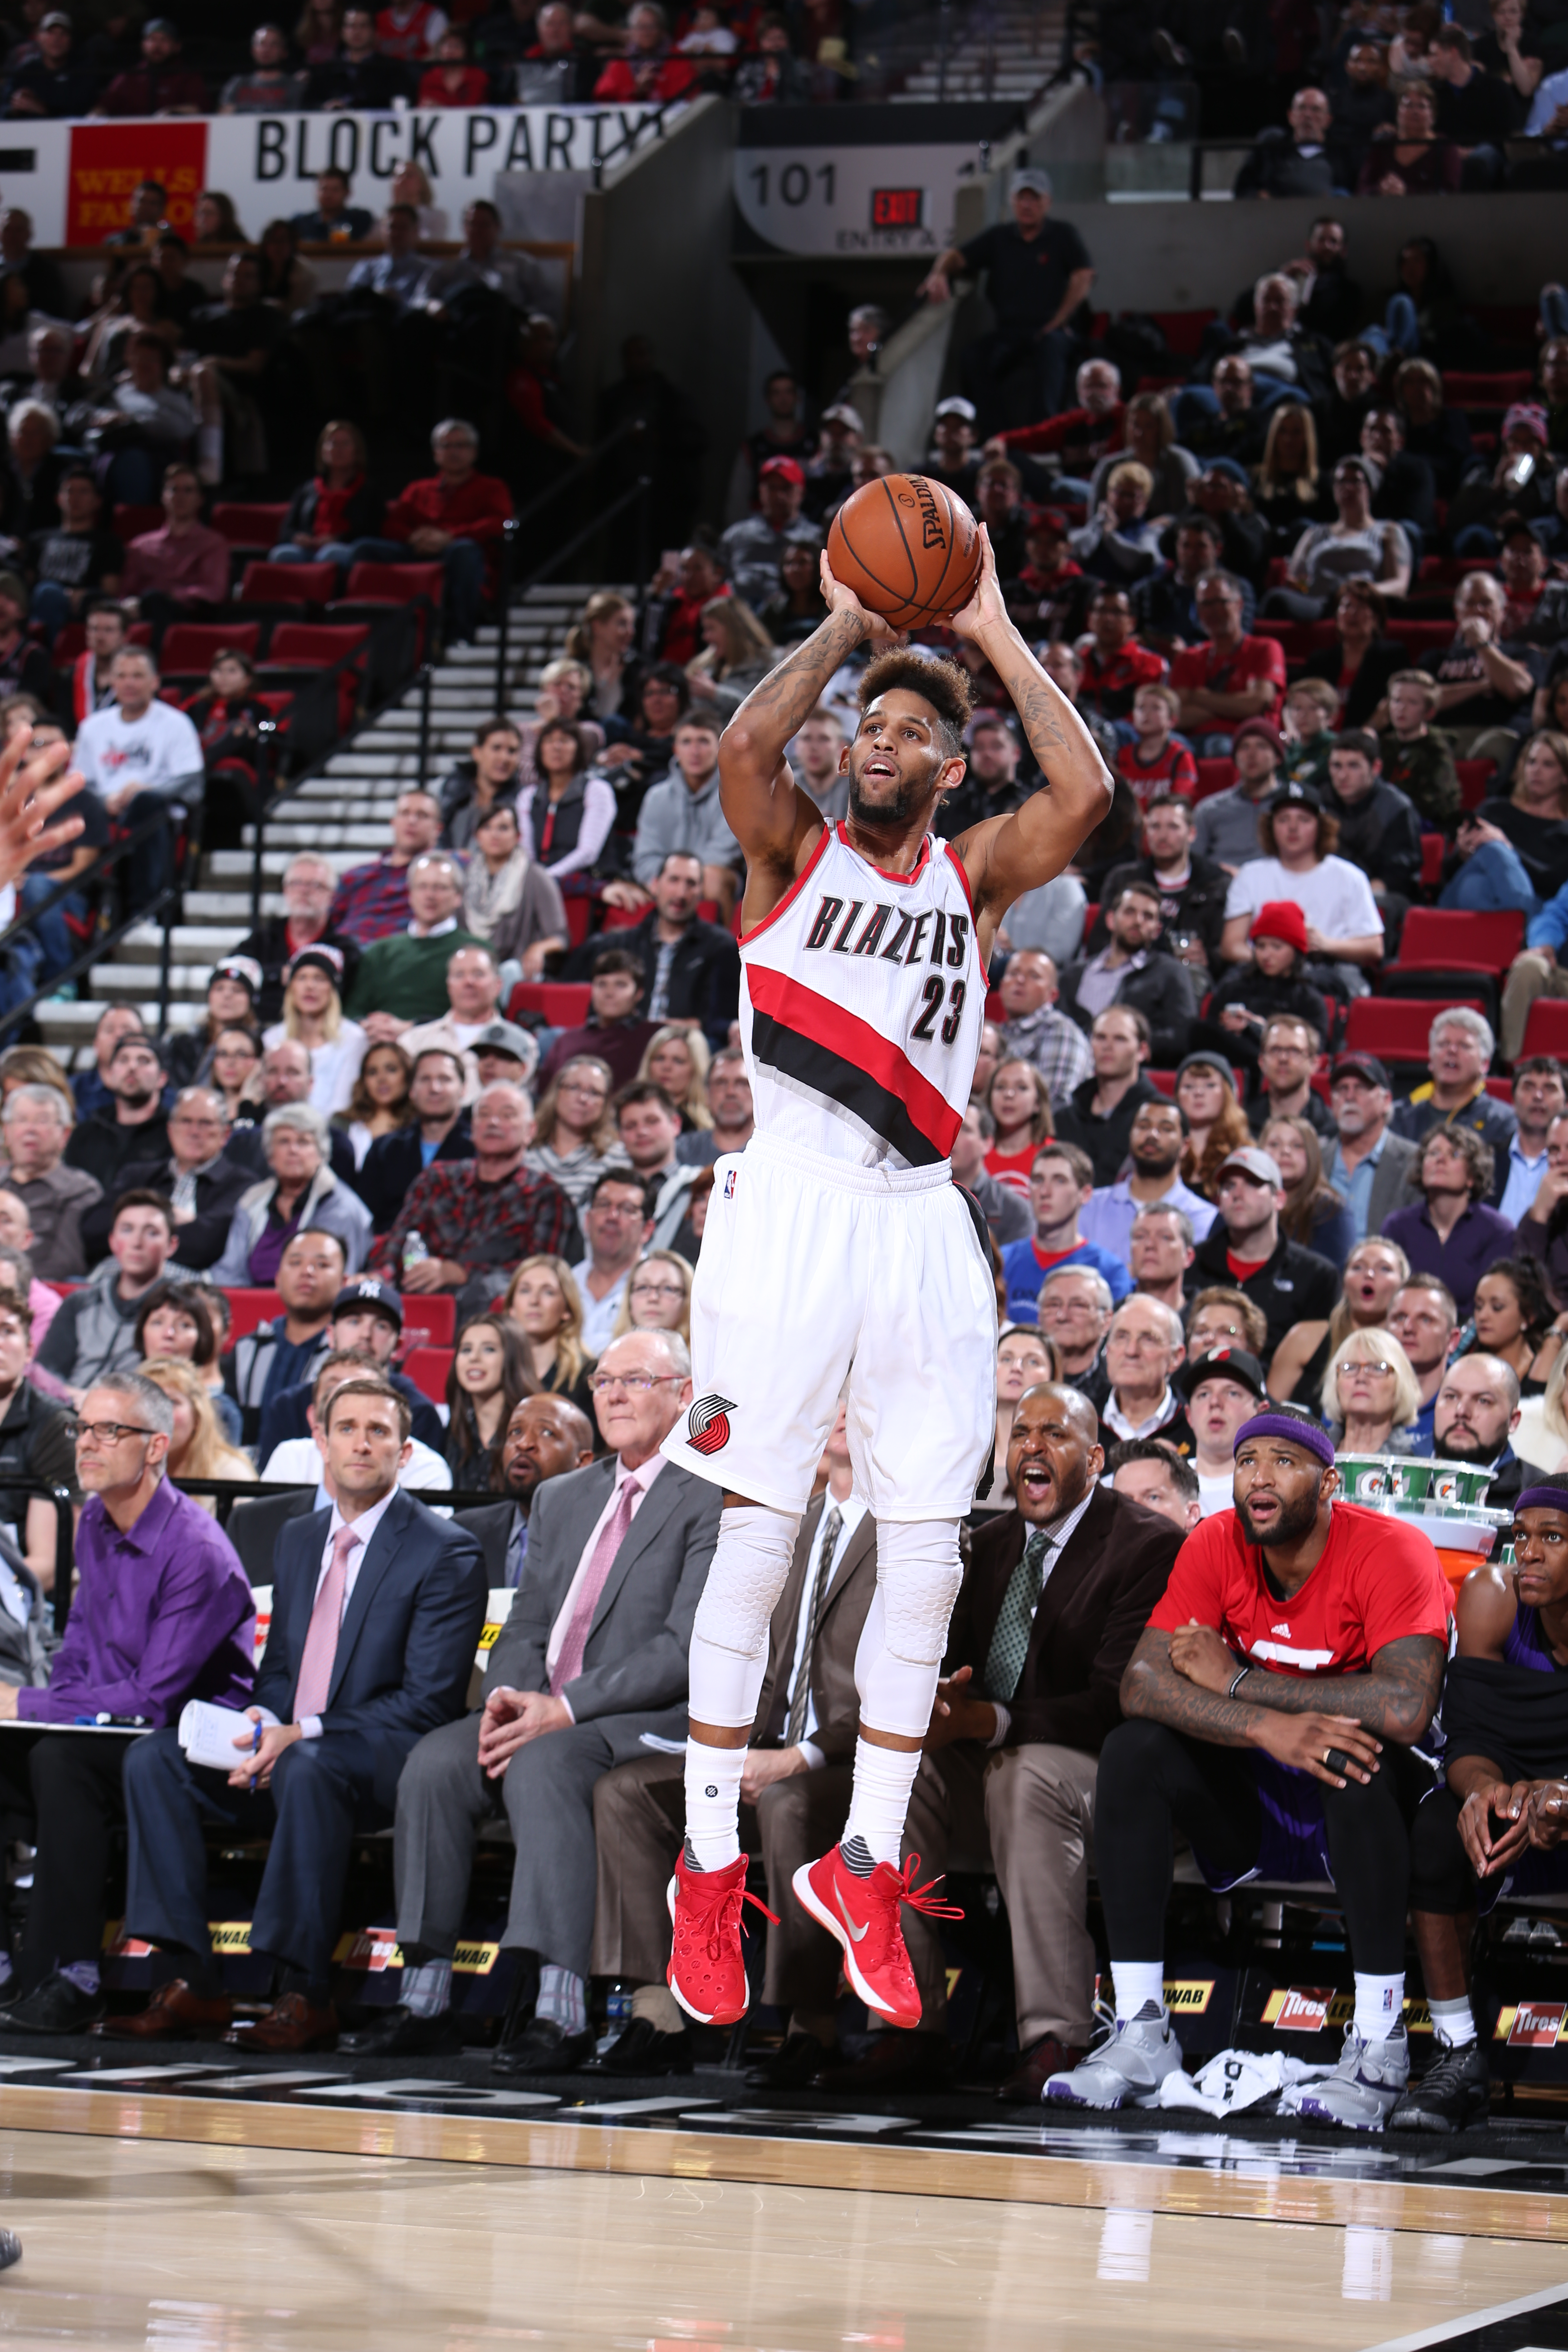 PORTLAND, OR - JANUARY 26:  Allen Crabbe #23 of the Portland Trail Blazers shoots against the Sacramento Kings on January 26, 2016 at the Moda Center in Portland, Oregon. (Photo by Sam Forencich/NBAE via Getty Images)